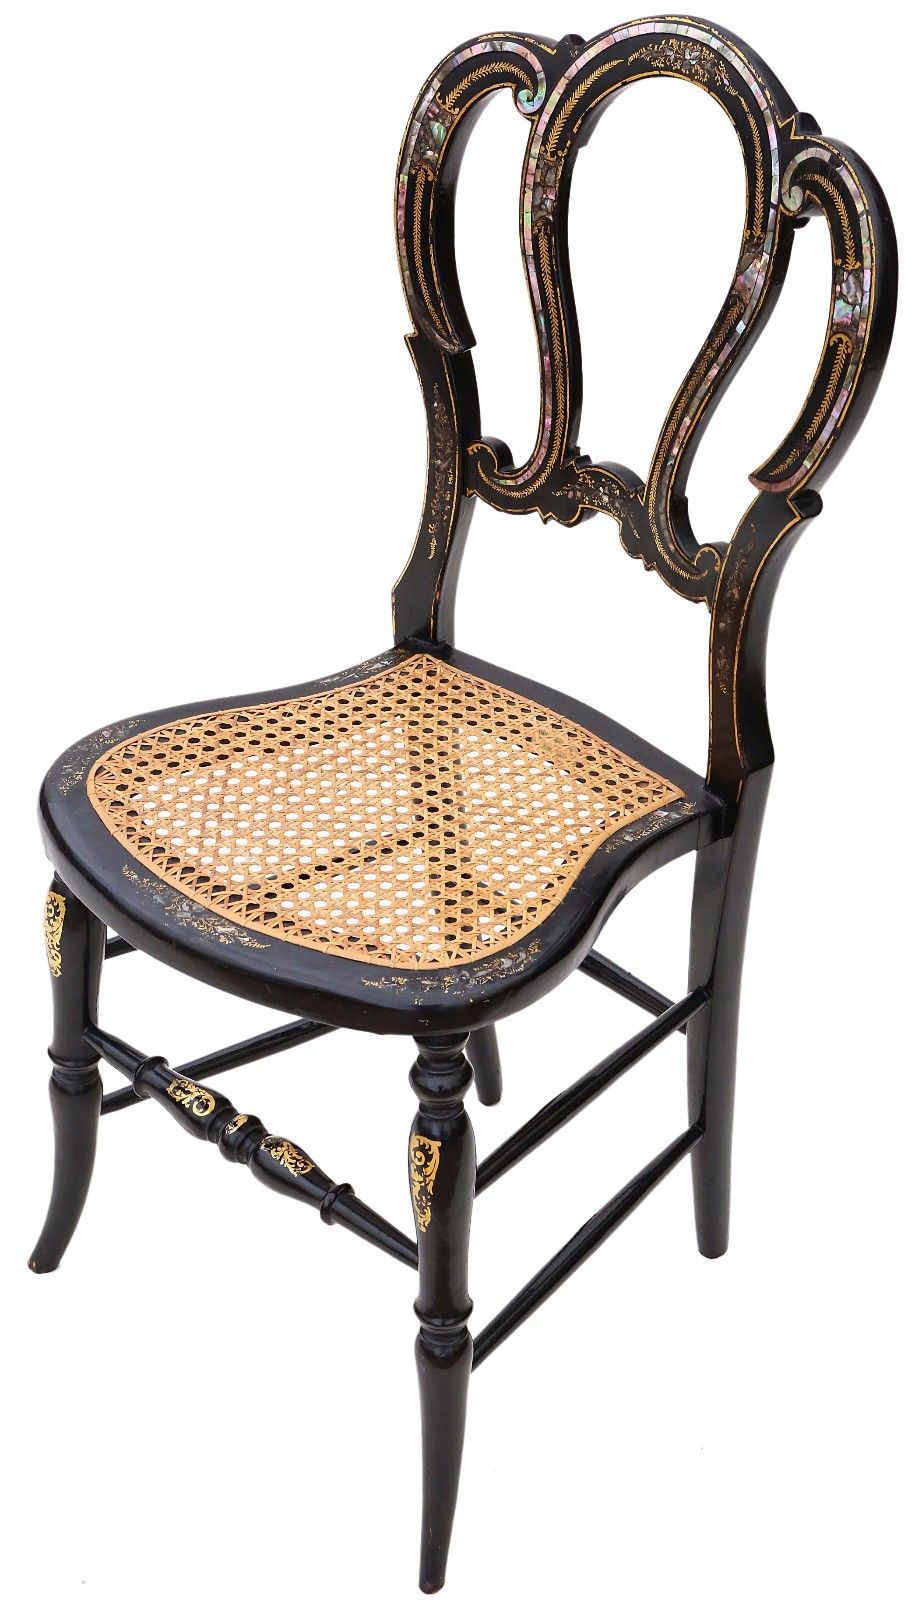 Antique Rare 19th Century Victorian Antique Ebonised Mother Of Pearl Cane Inlaid Bedroom Chair Came From The Master S Lo Chair Bedroom Chair Decorative Pieces